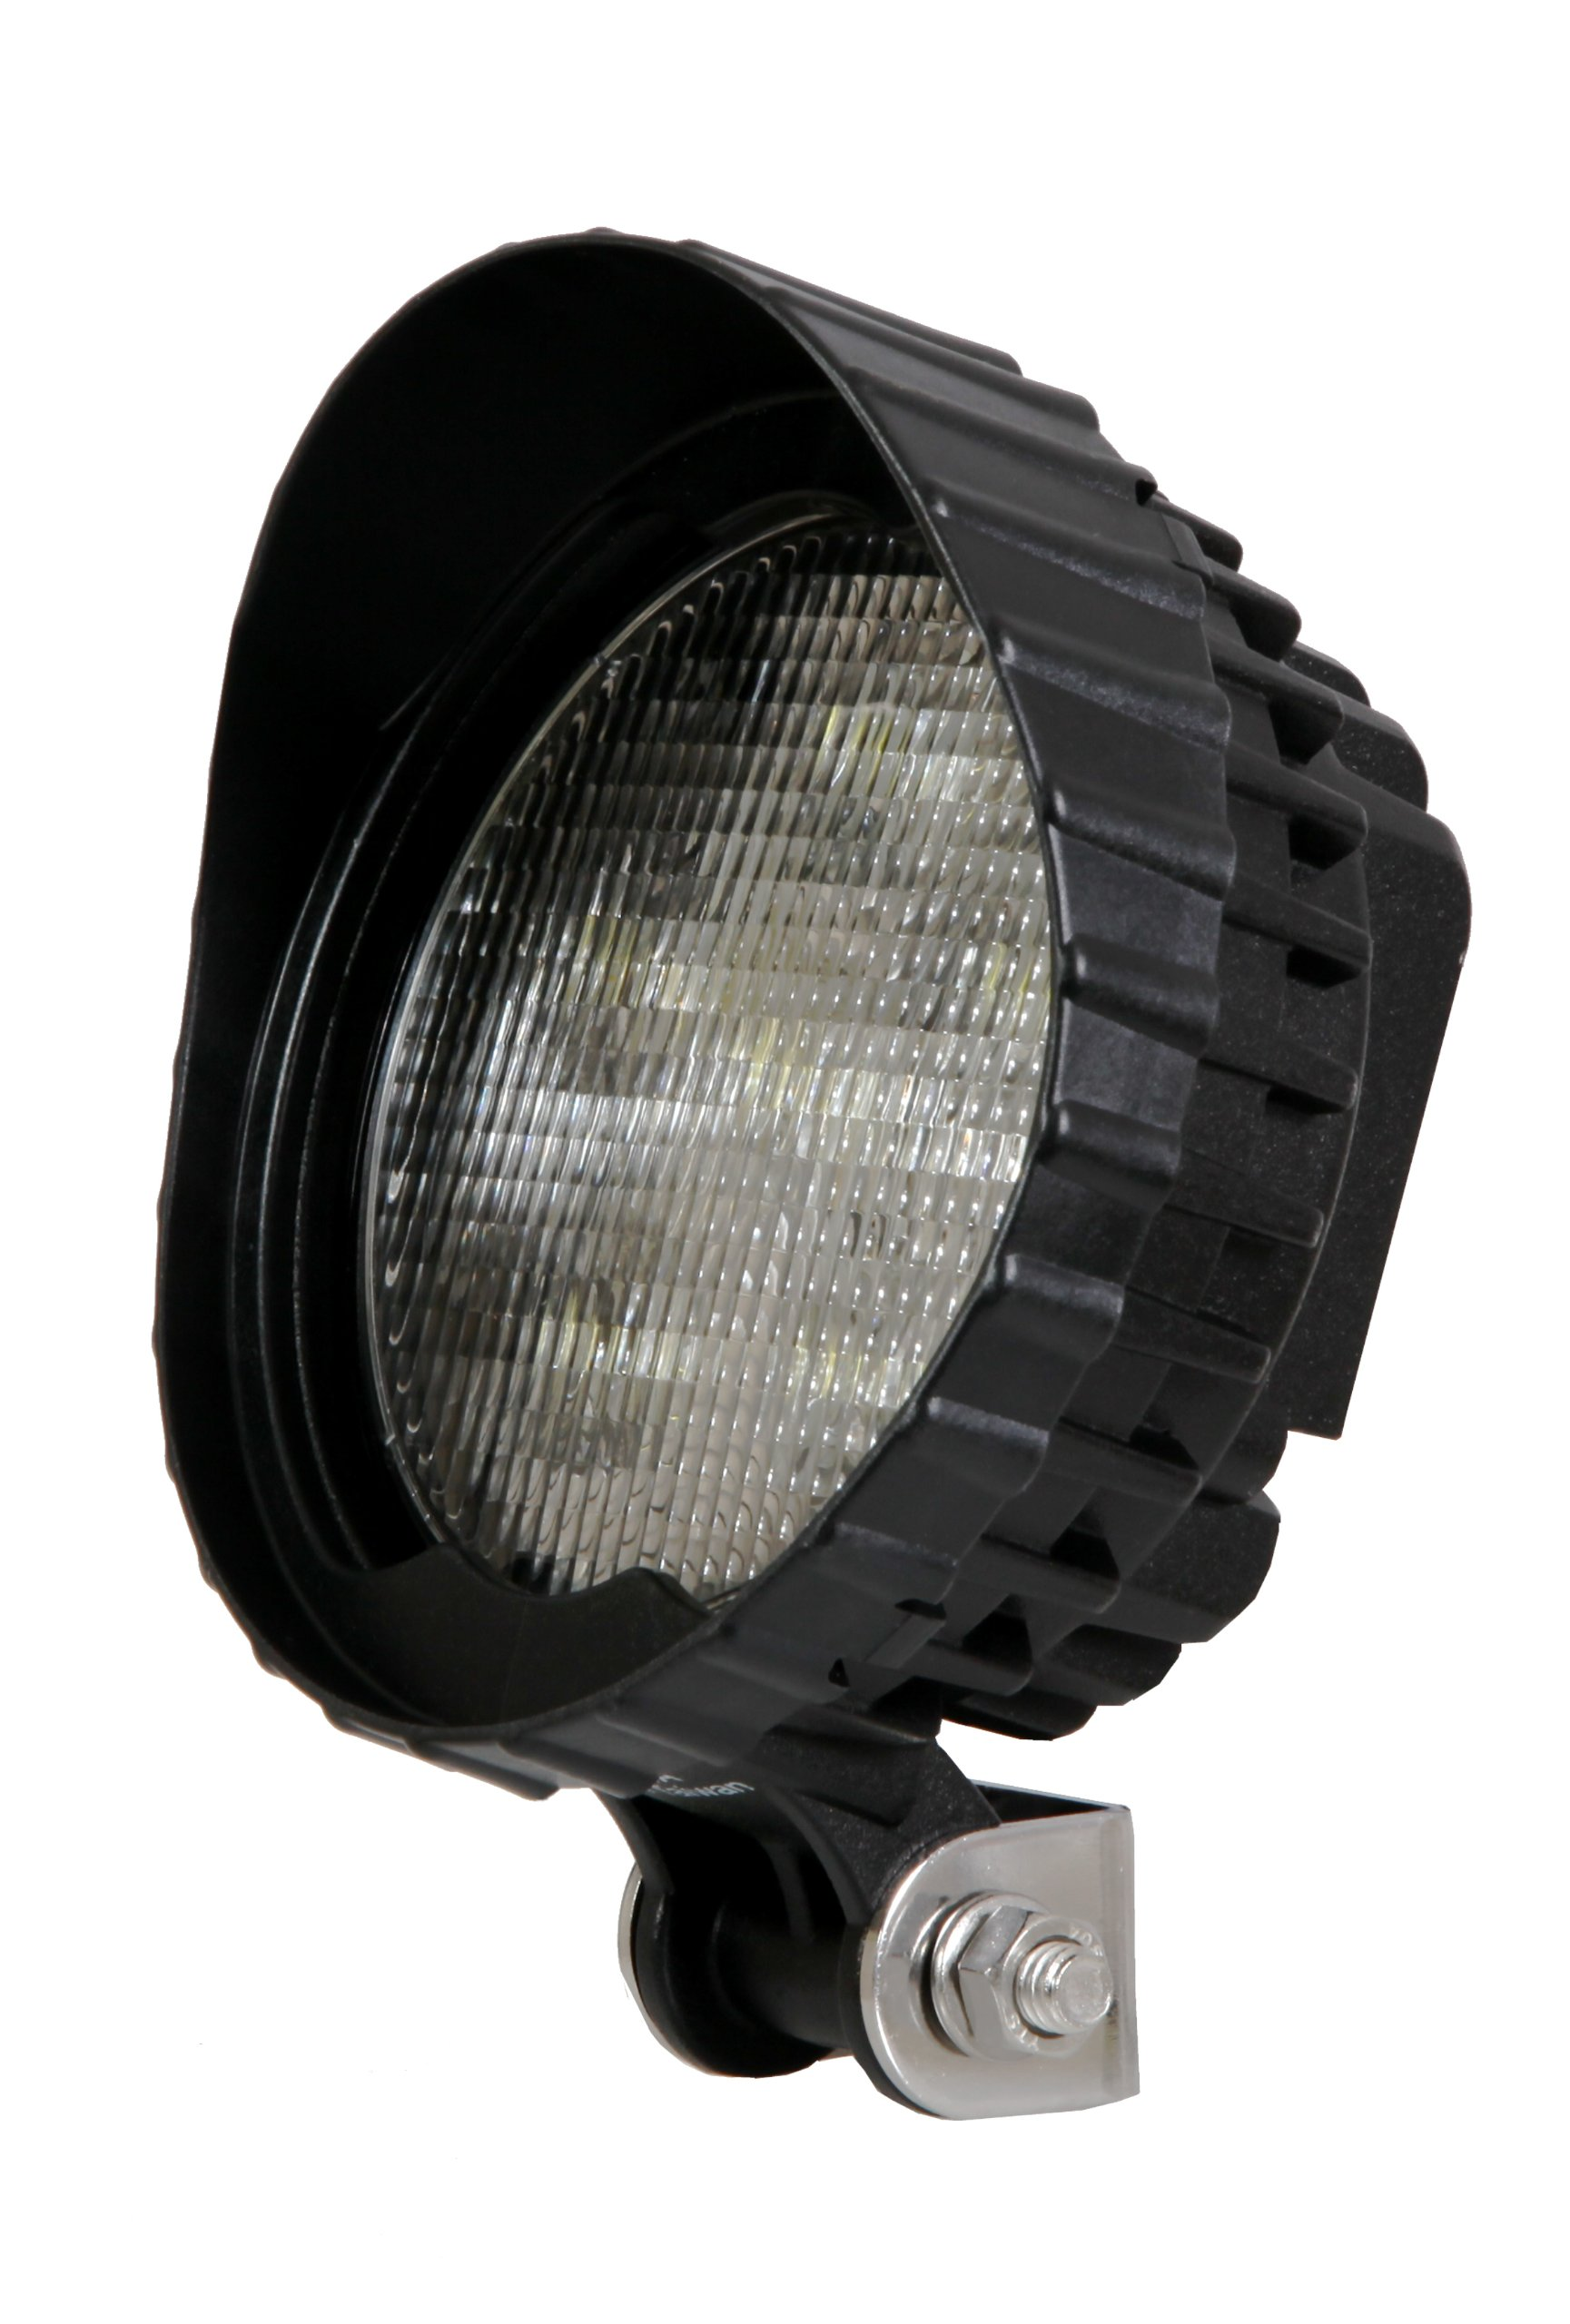 Maxxima MWL-01HP 5'' Heavy Duty Round LED Work Light  1200 Lumens by Maxxima